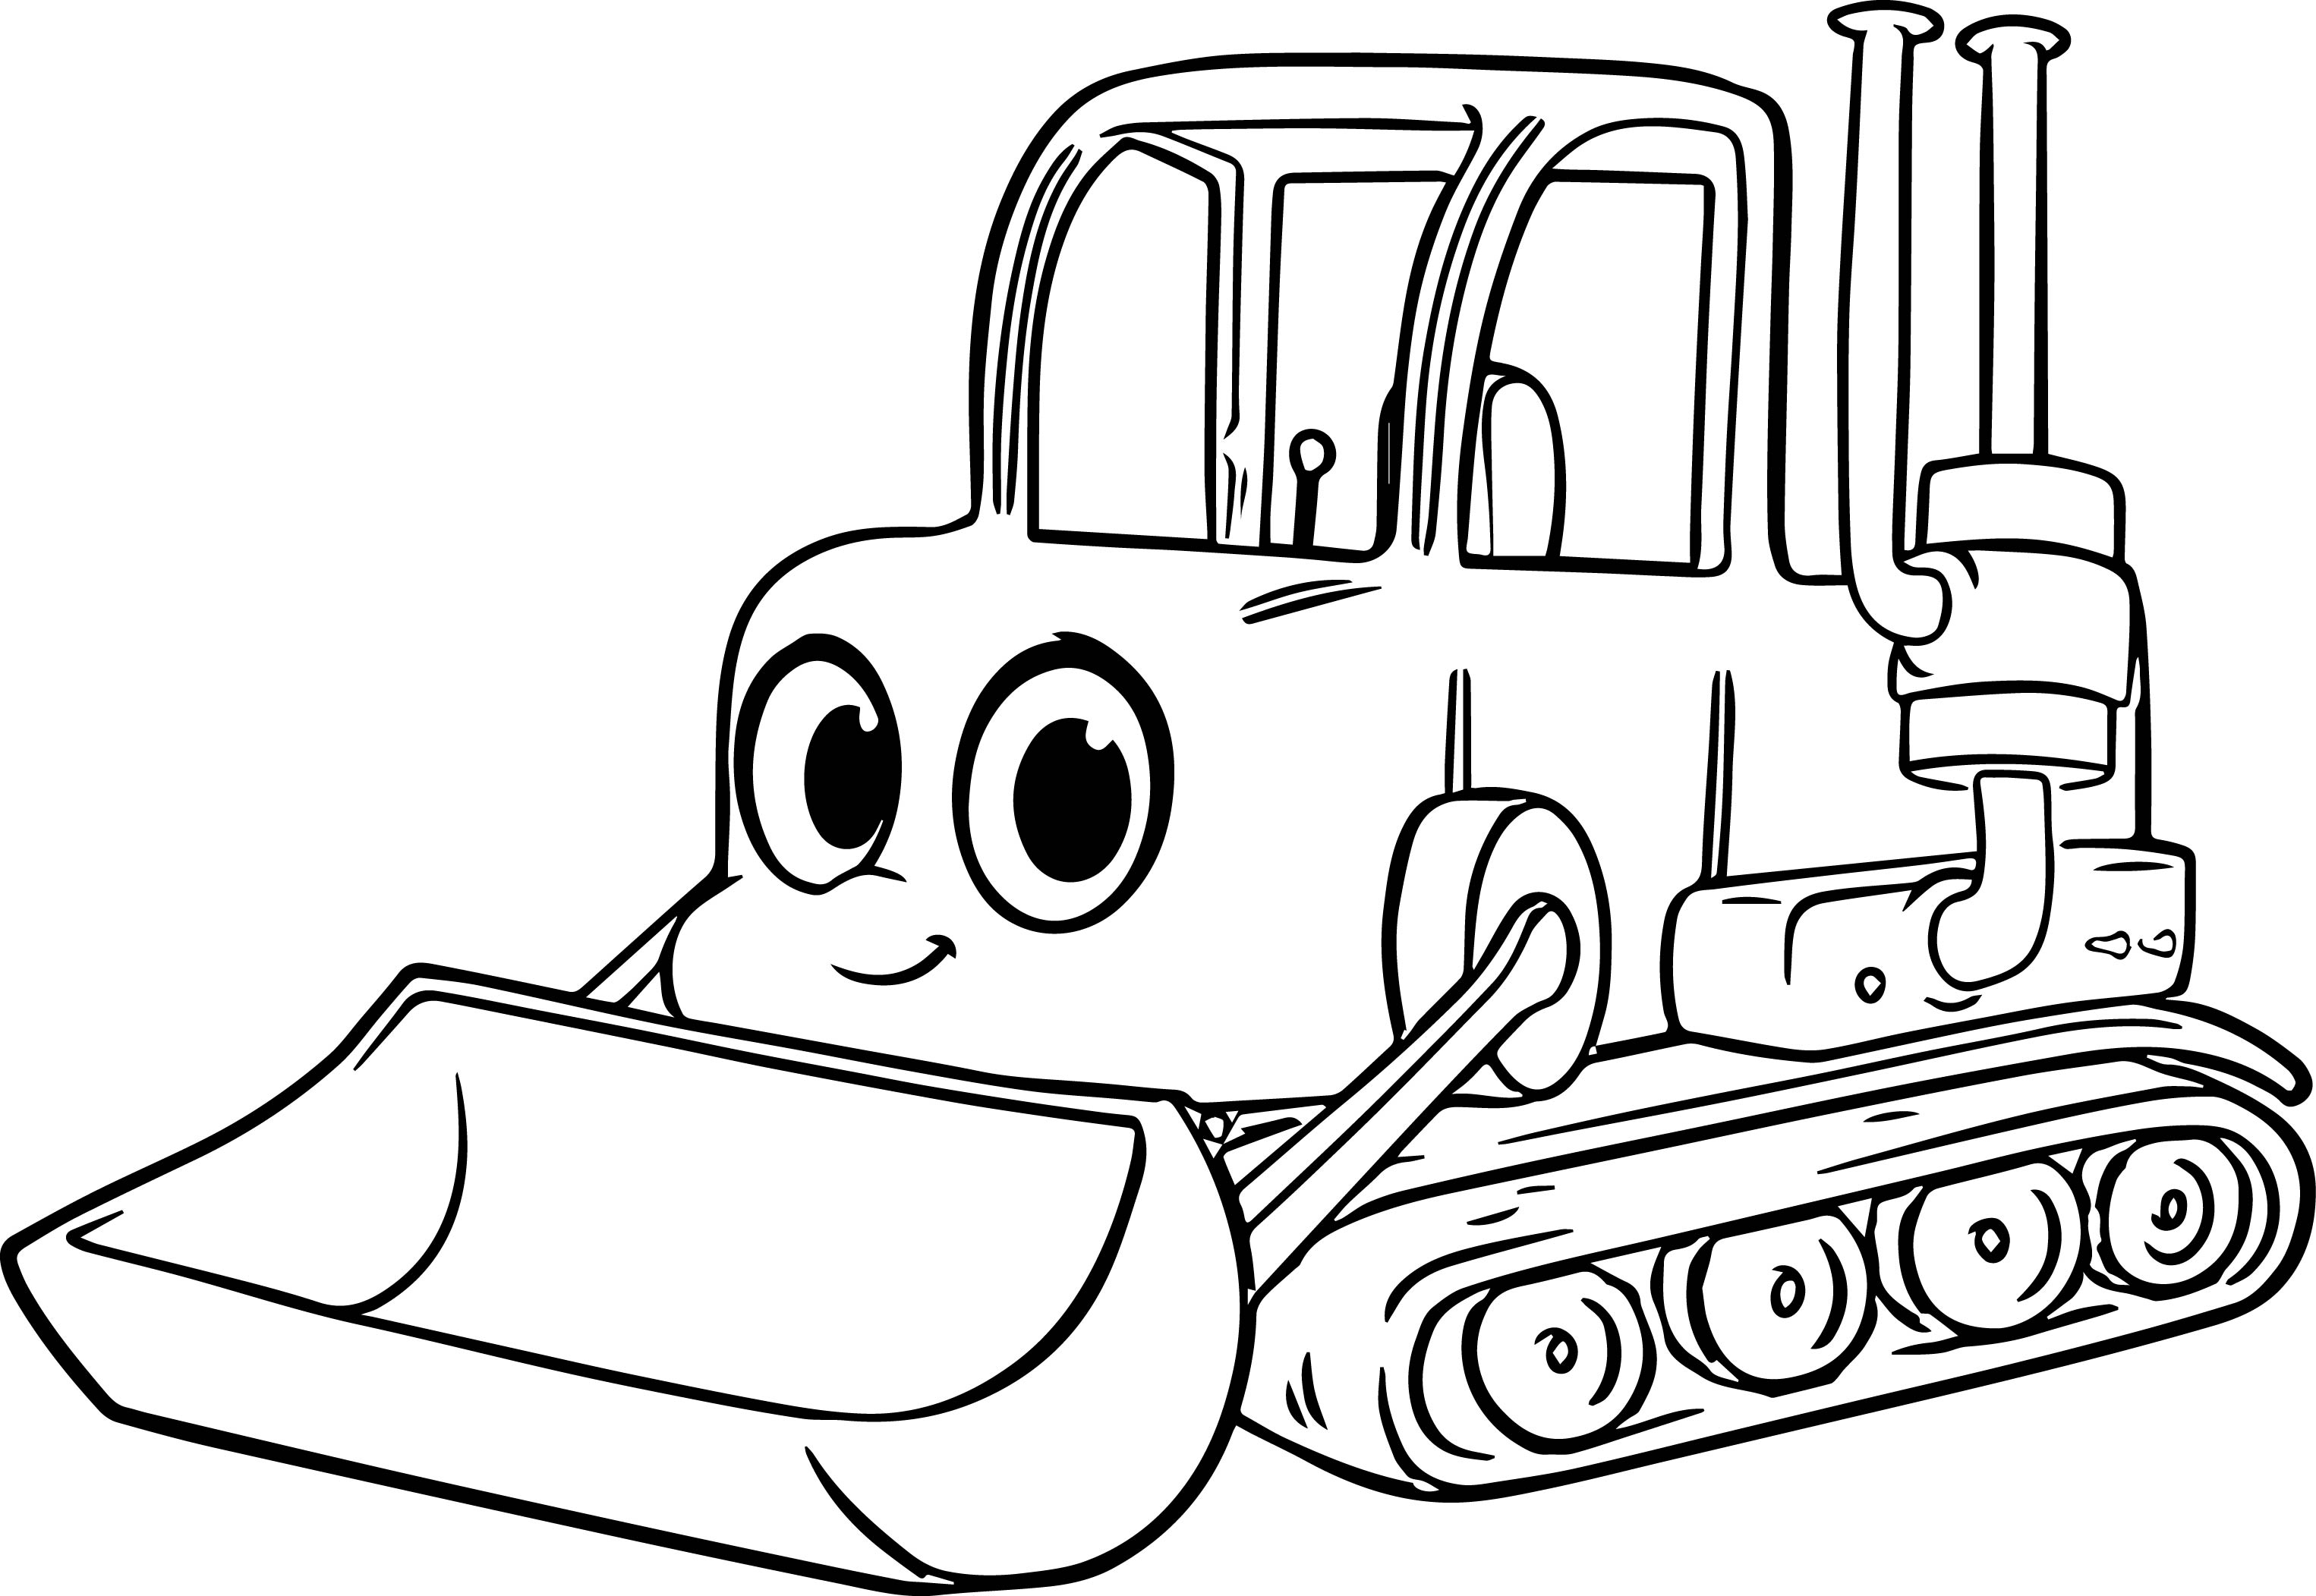 construction equipment coloring pages construction equipment coloring pages coloring pages for pages equipment coloring construction